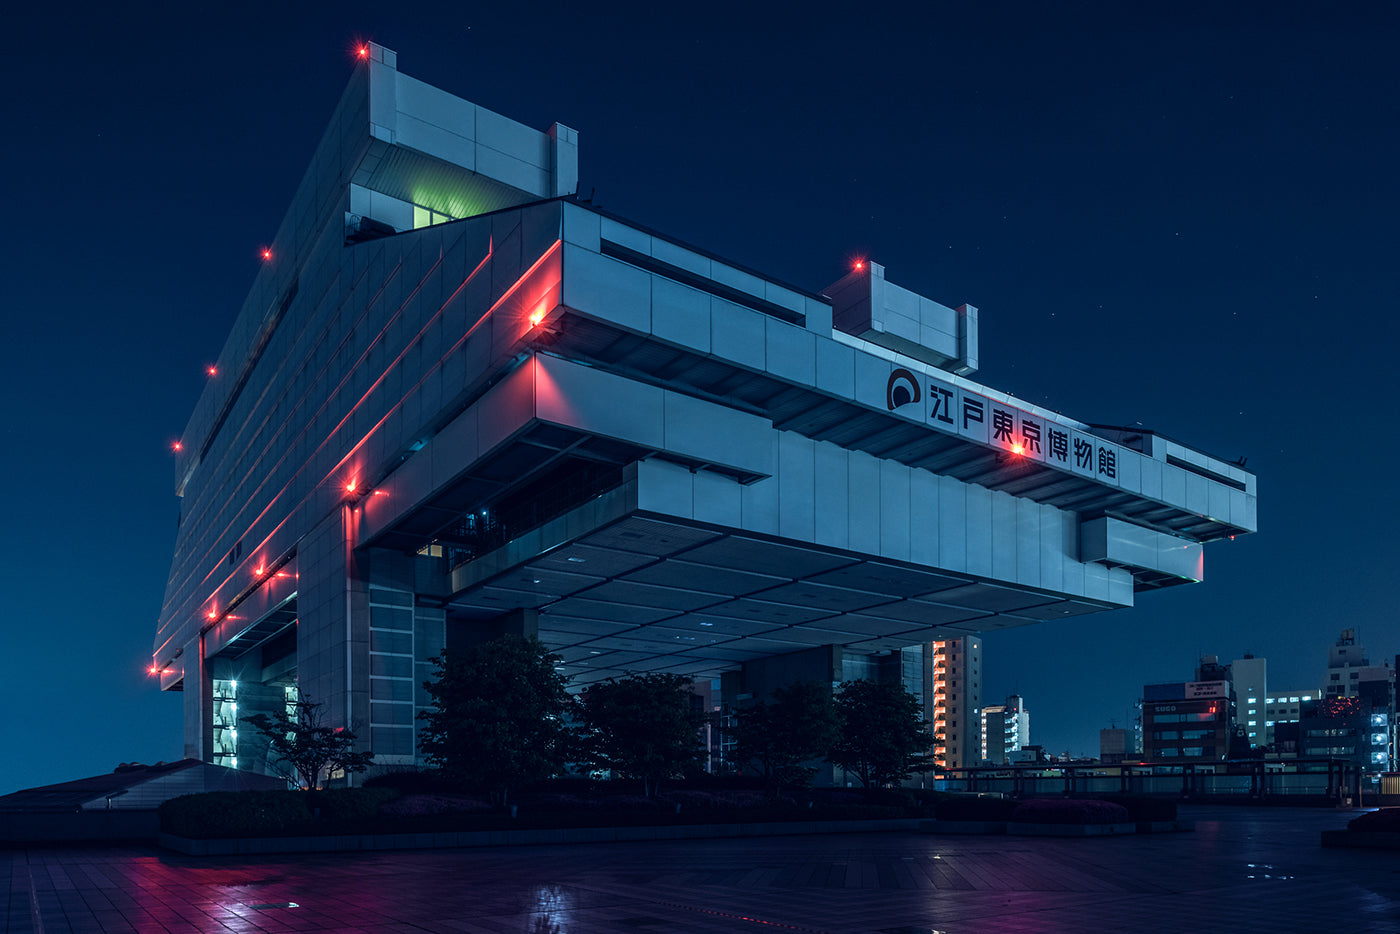 The Edo-Tokyo Museum could pass as a sinister HQ for a faceless bad guy in this series. (Photo: Tom Blachford)